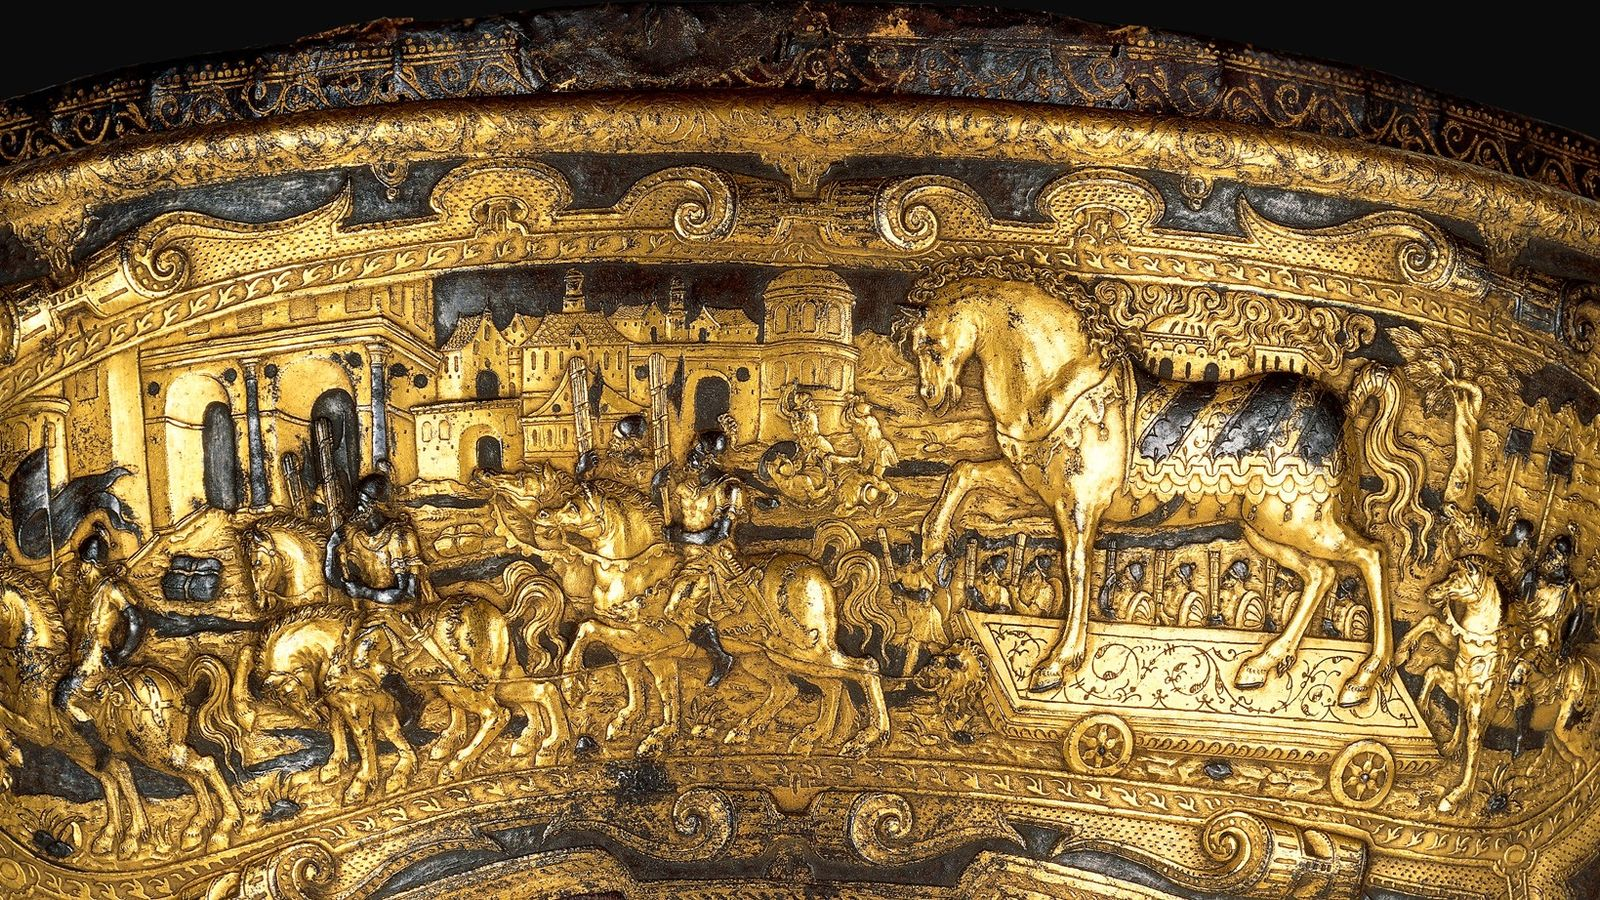 This magnificent 16th-century saddle shows the Trojans bringing the wooden horse into their city, unaware of ...